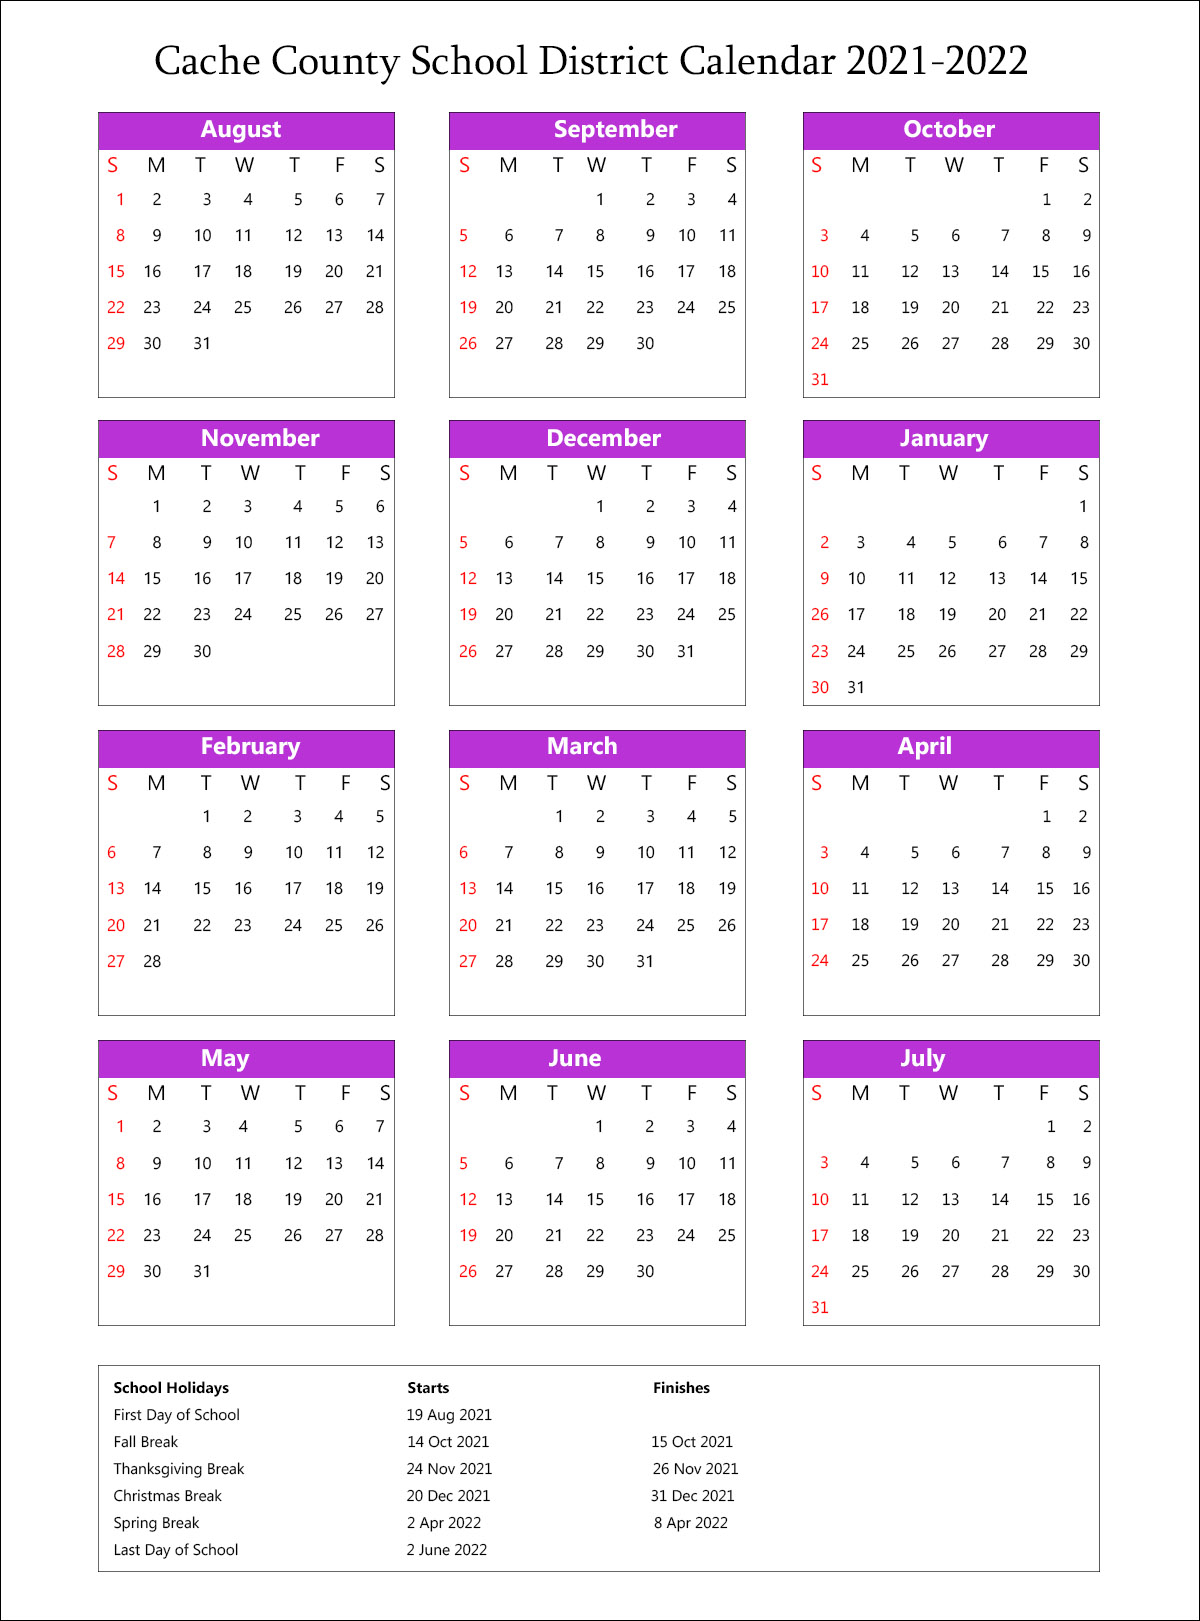 Cache County School District, Utah Calendar Holidays 2021